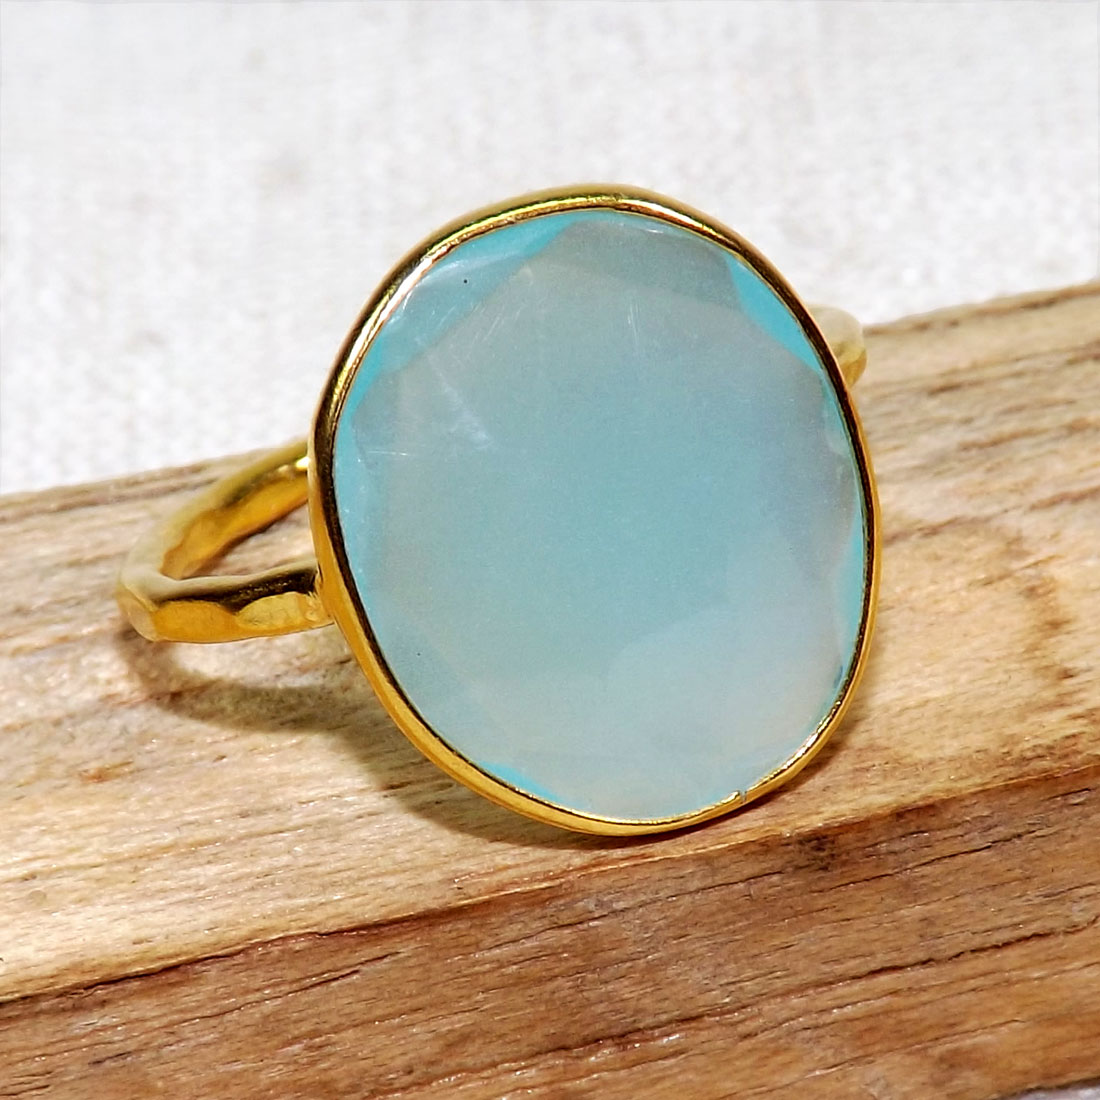 Aqua Chalcedony A - BGR970-18crt Gold Plated 925 Sterling Silver Rings With Natural